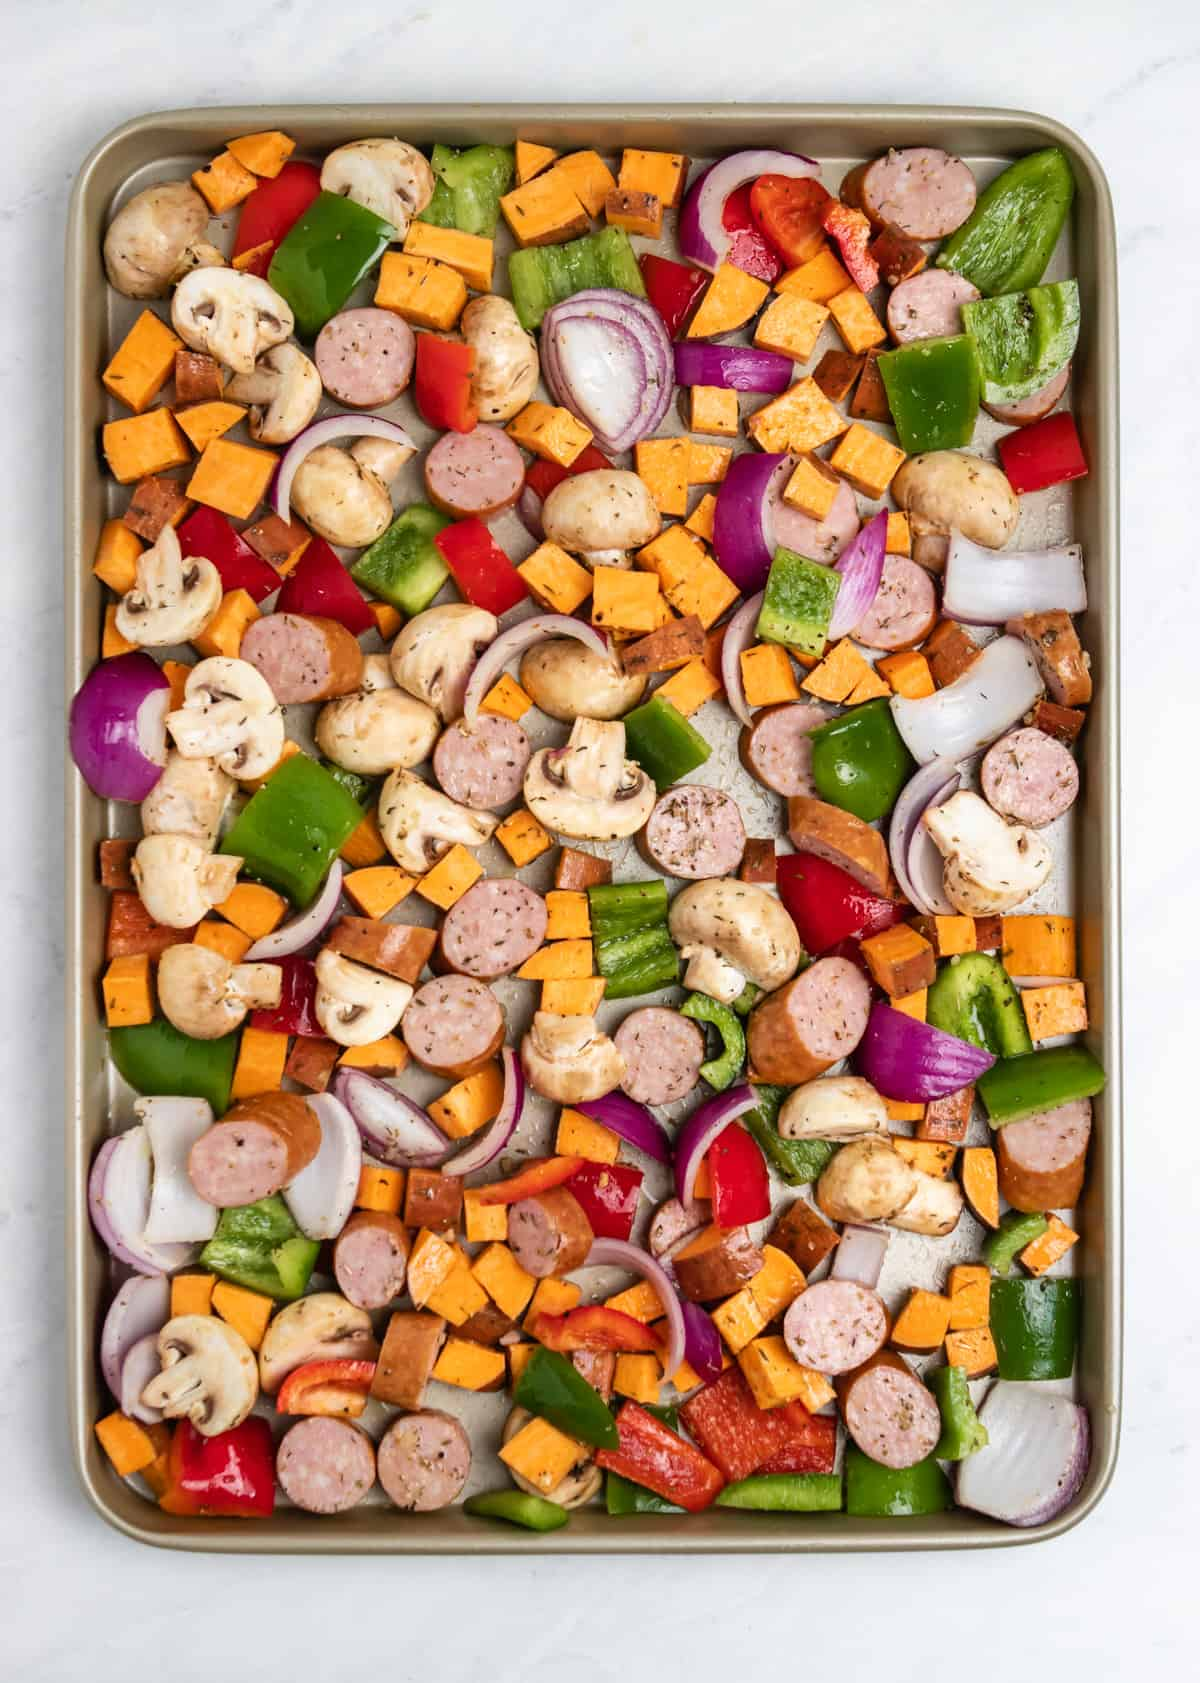 Veggies tossed in olive oil and spices on pan.